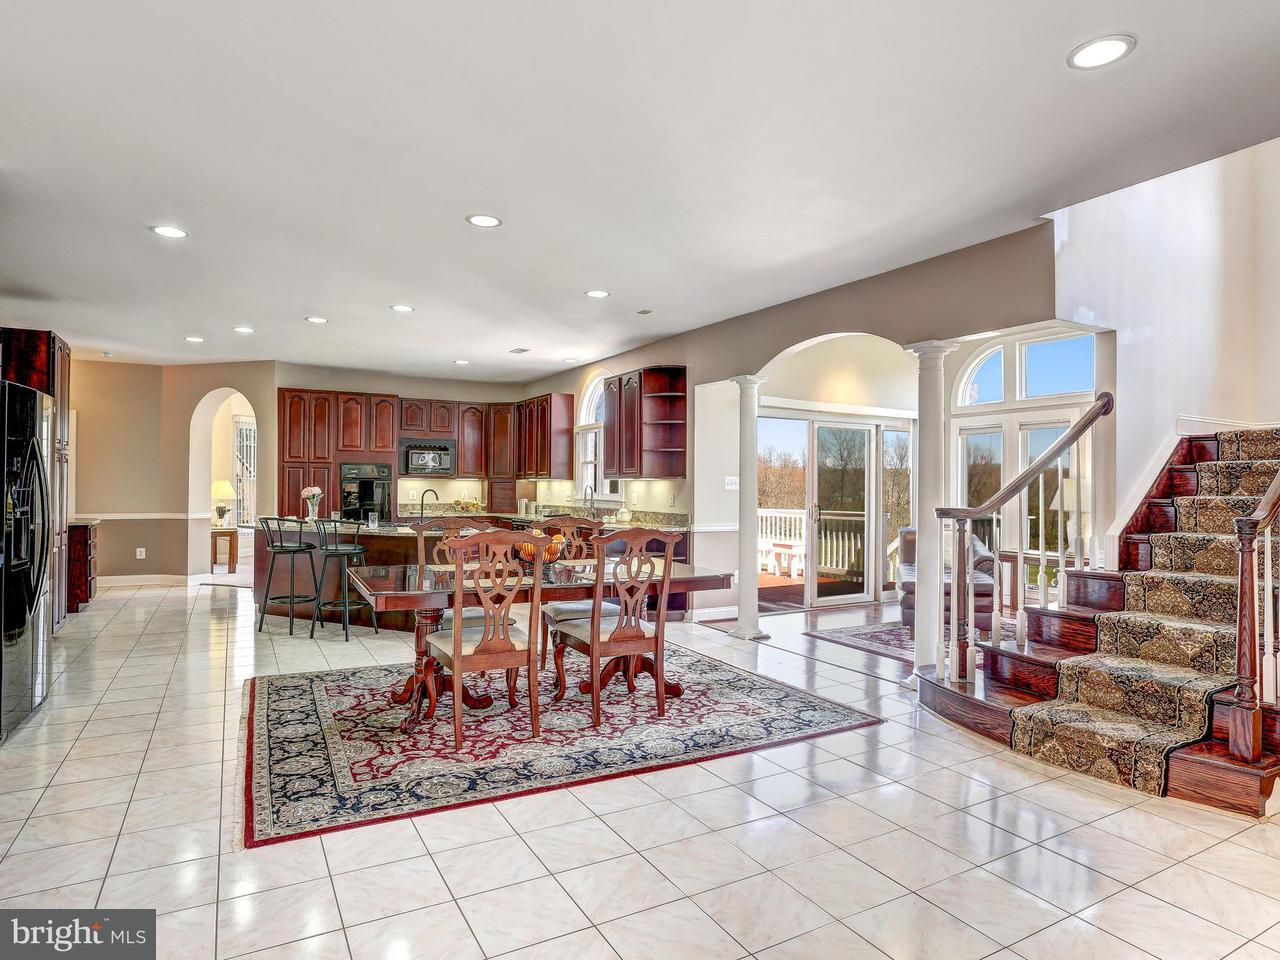 Single Family Home for Sale at 19405 PROSPECT POINT Court 19405 PROSPECT POINT Court Brookeville, Maryland 20833 United States